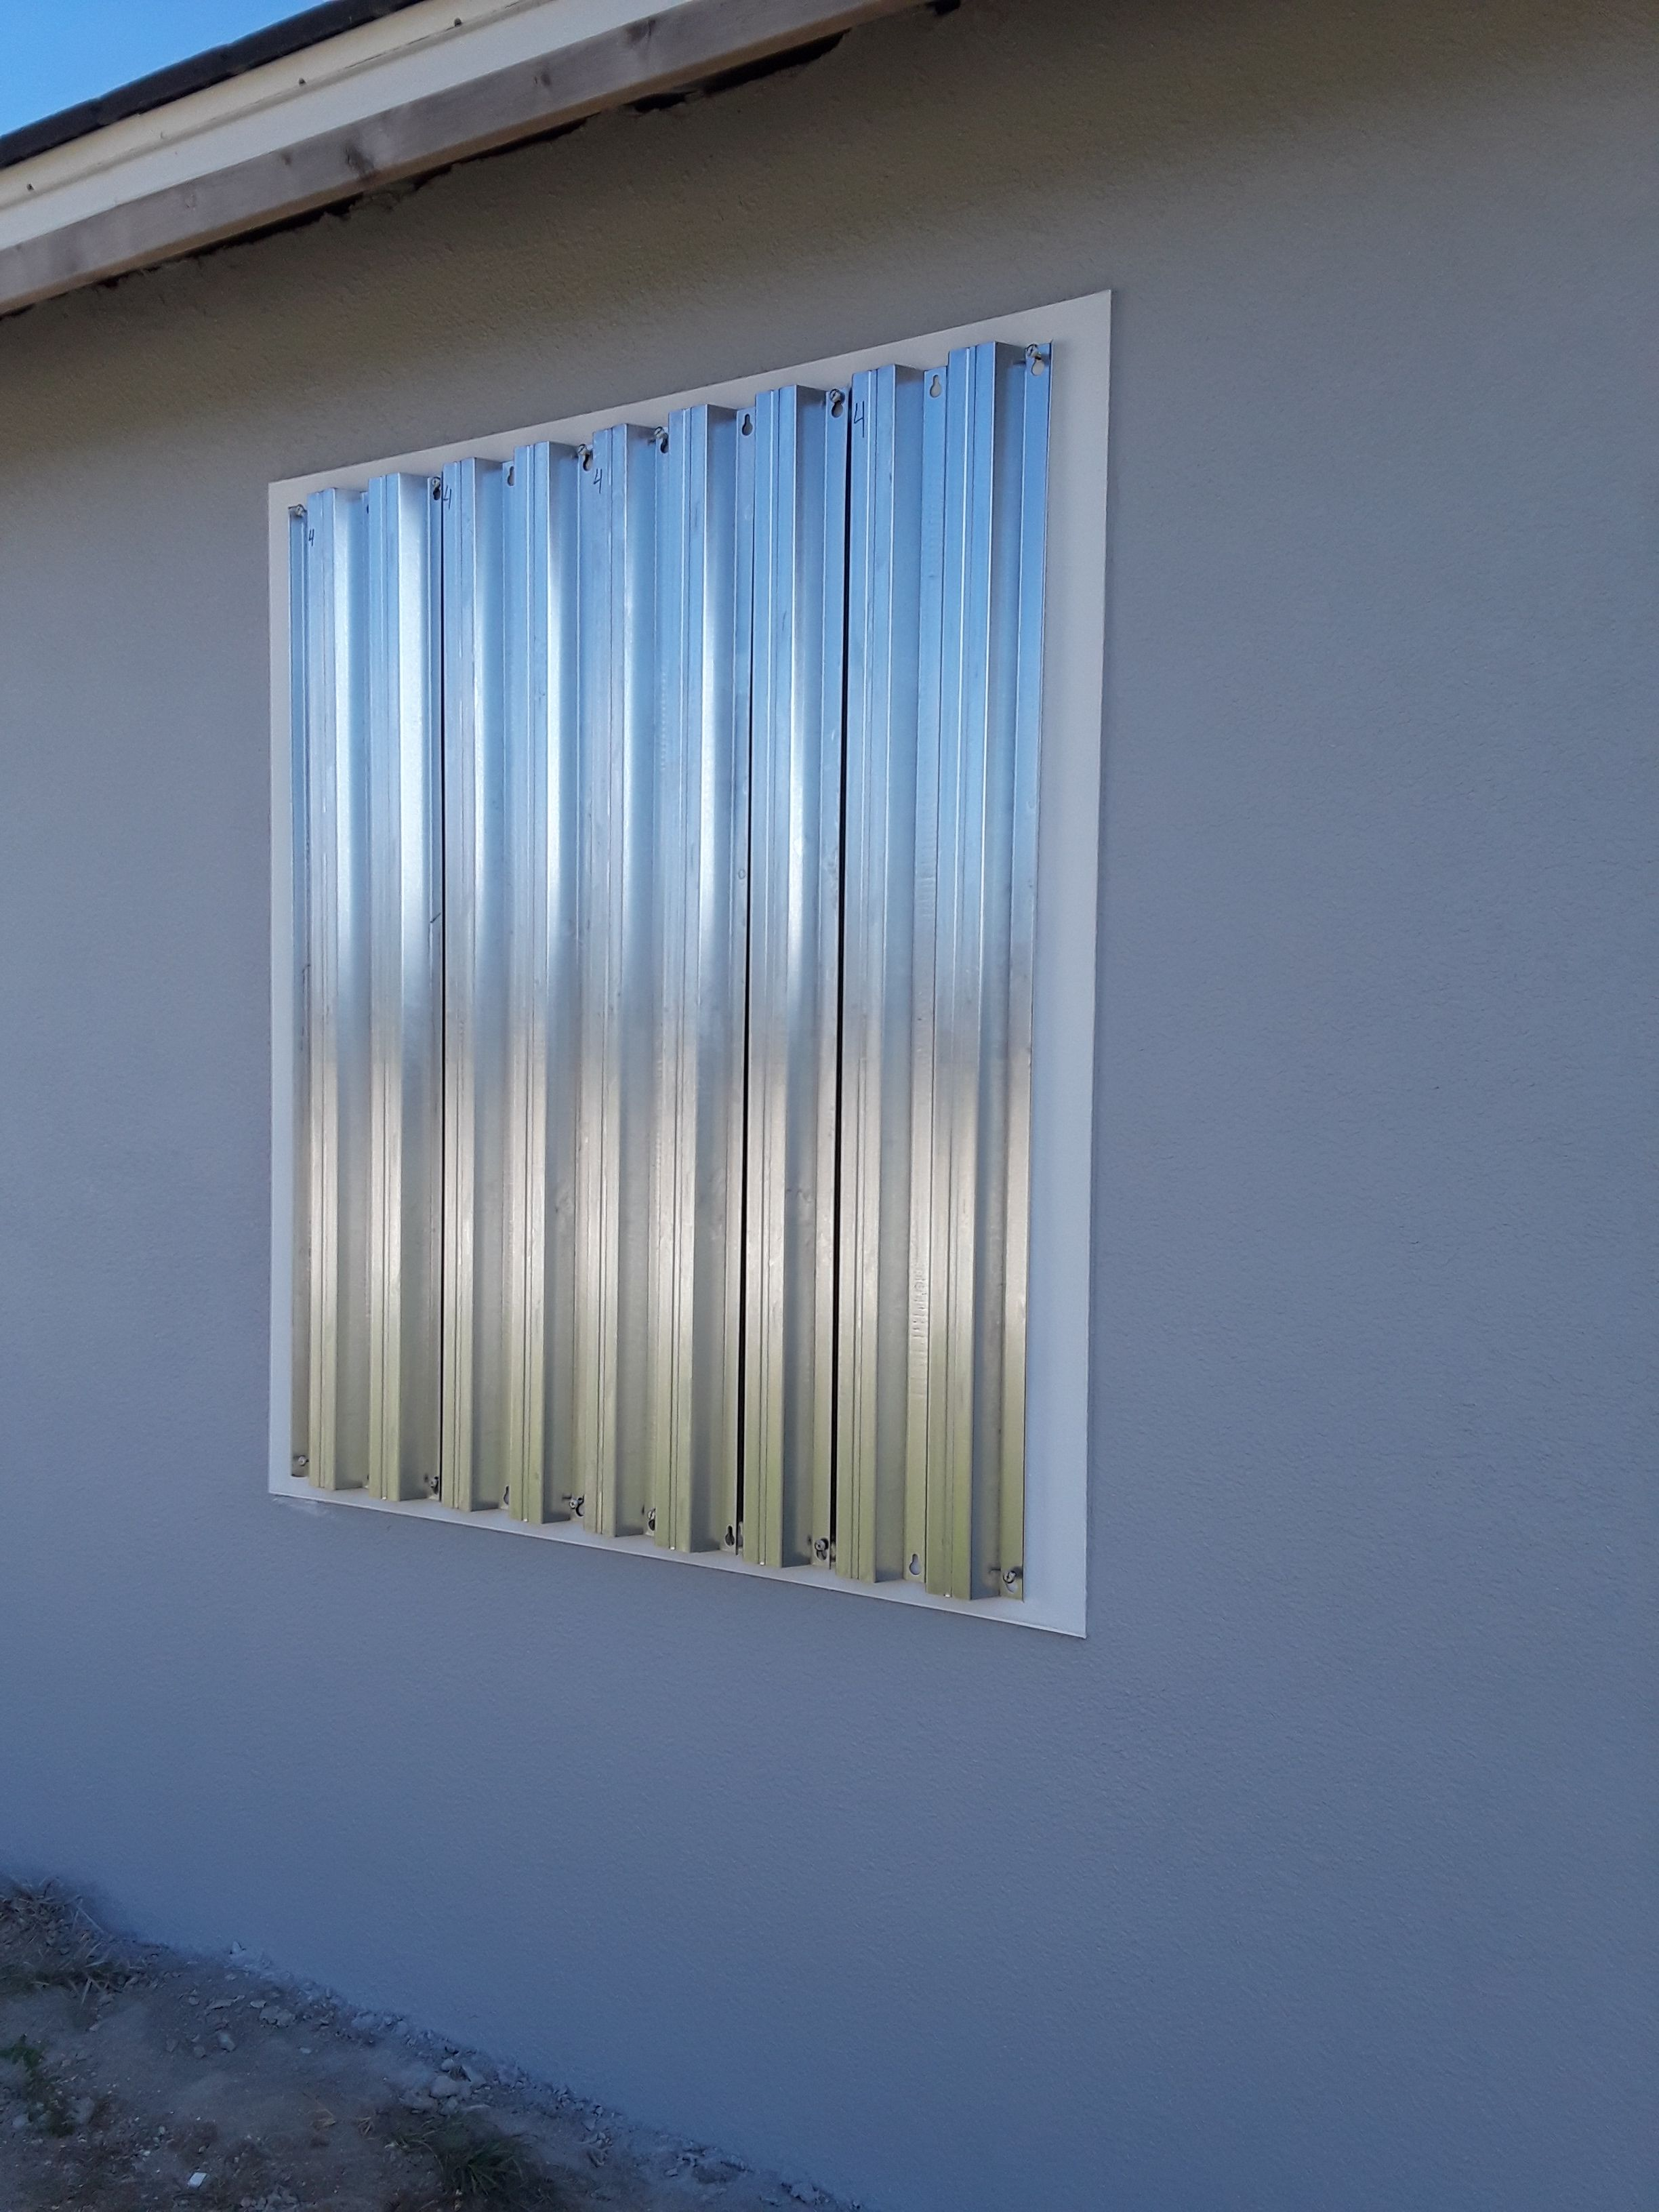 Hurricane Shutters In Brevard County Storm Panels Hurricane Panels Hurricane Panels Hurricane Shutters Hurricane Protection